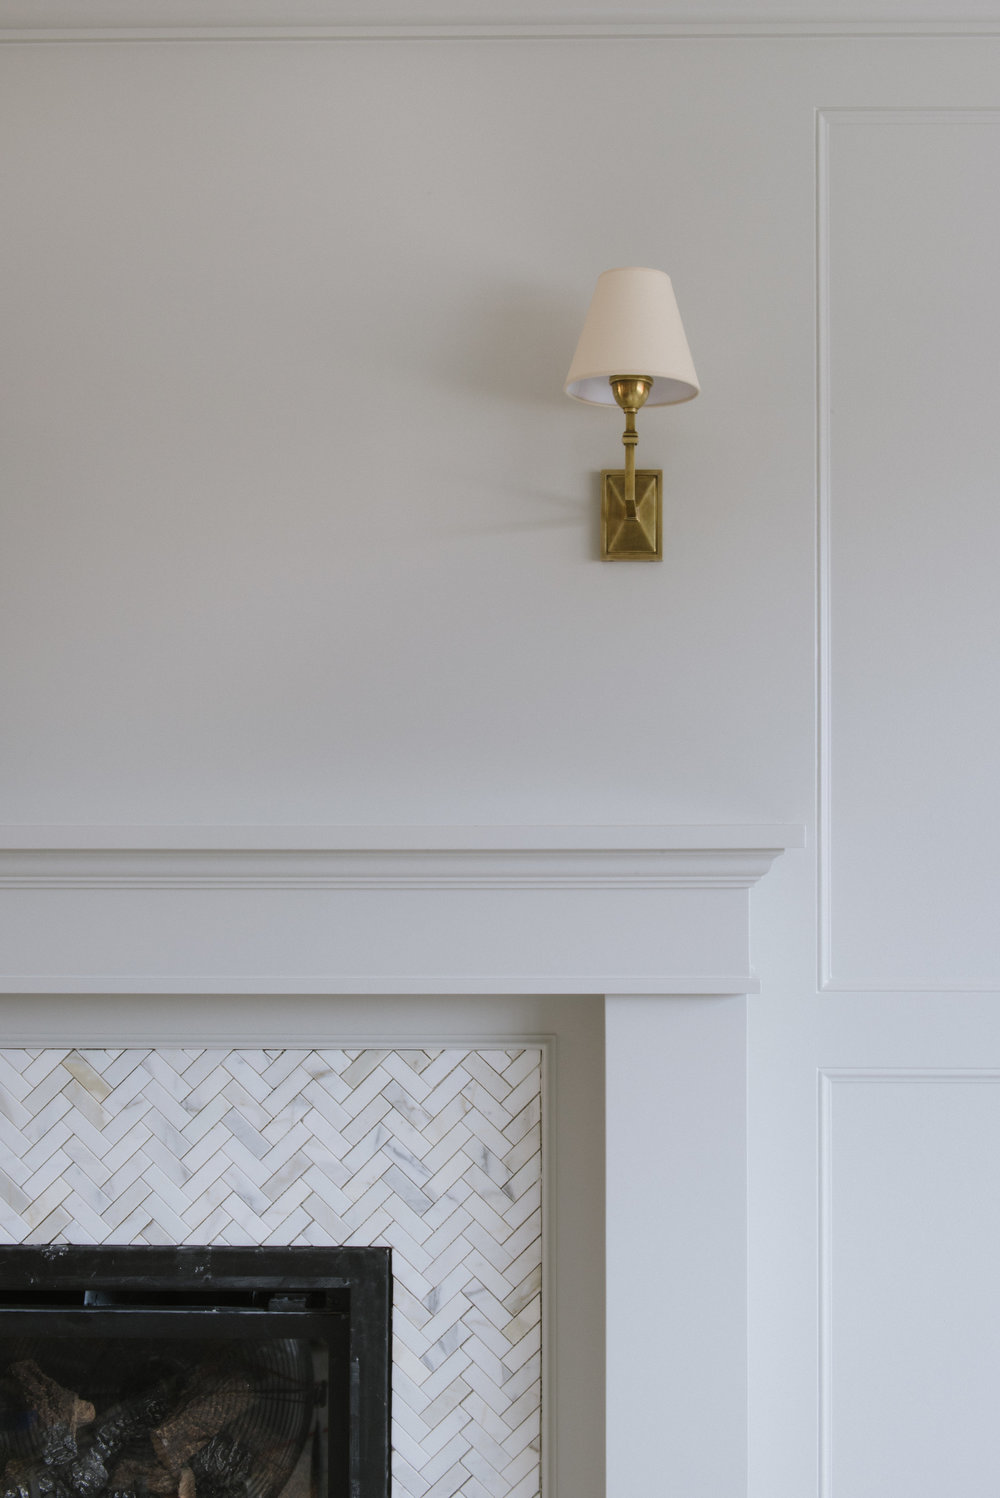 Fireplace mantel with golden lamp